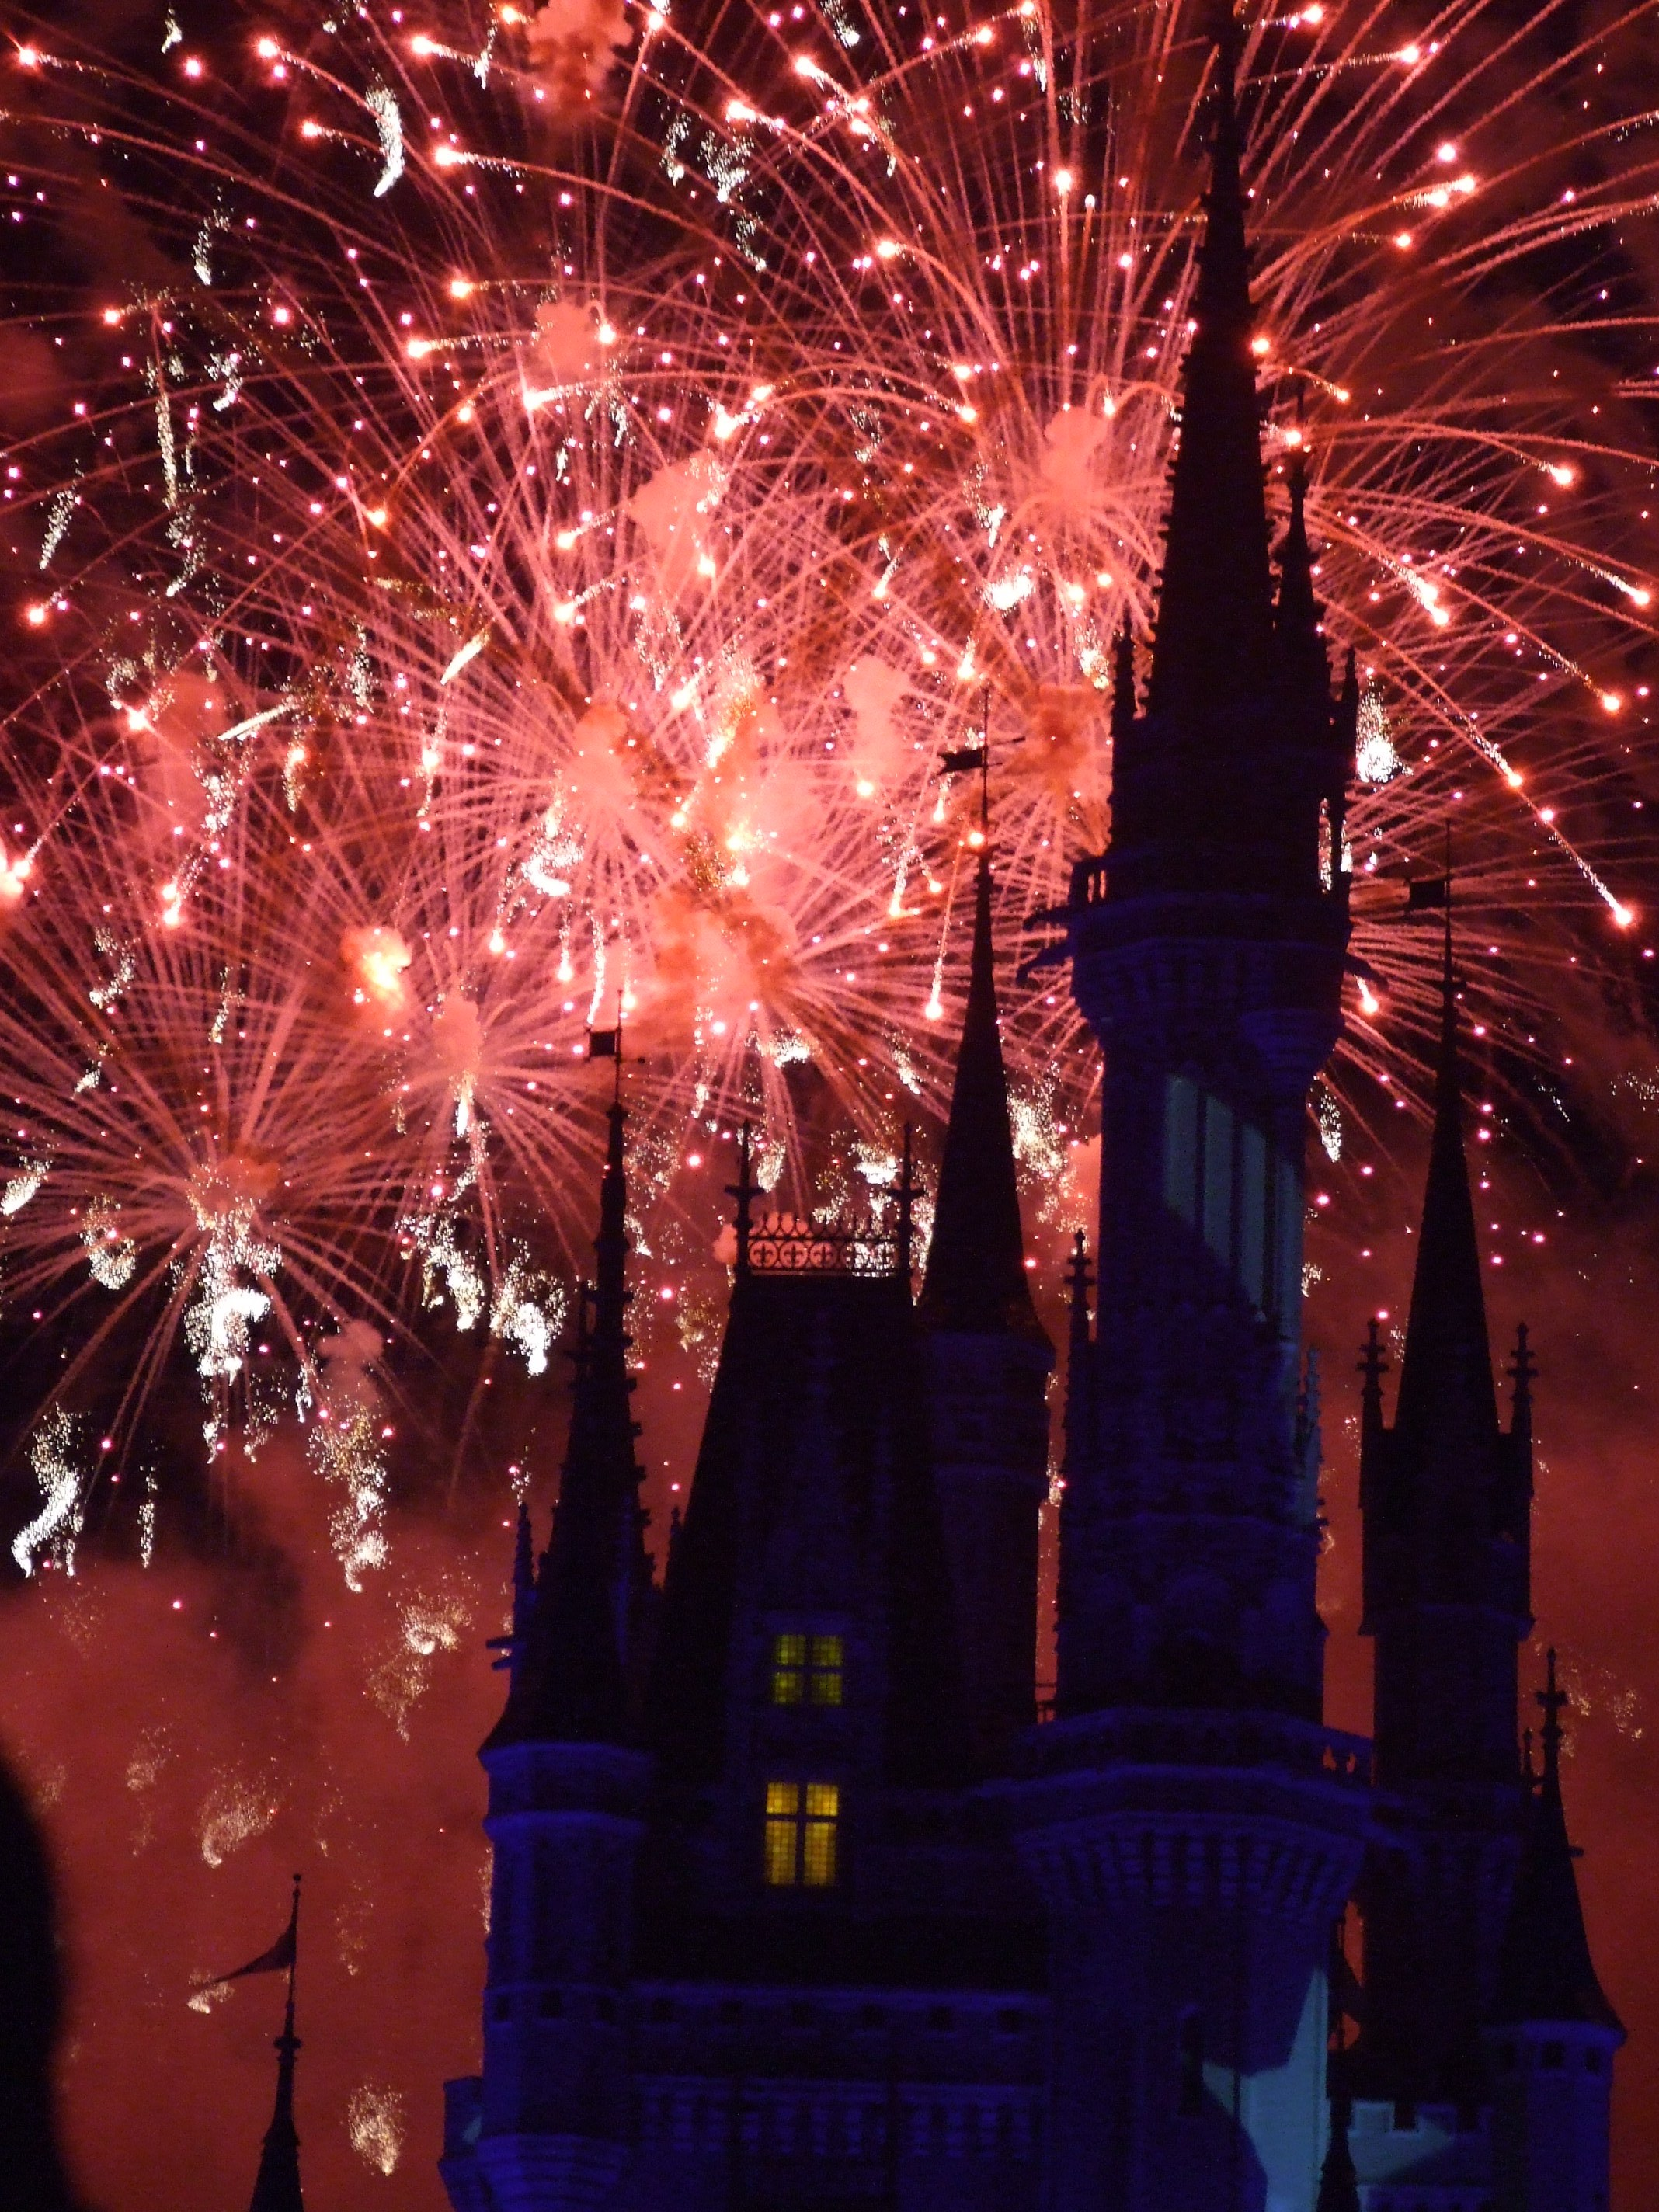 File:Wishes Magic Kingdom jpg - Wikipedia